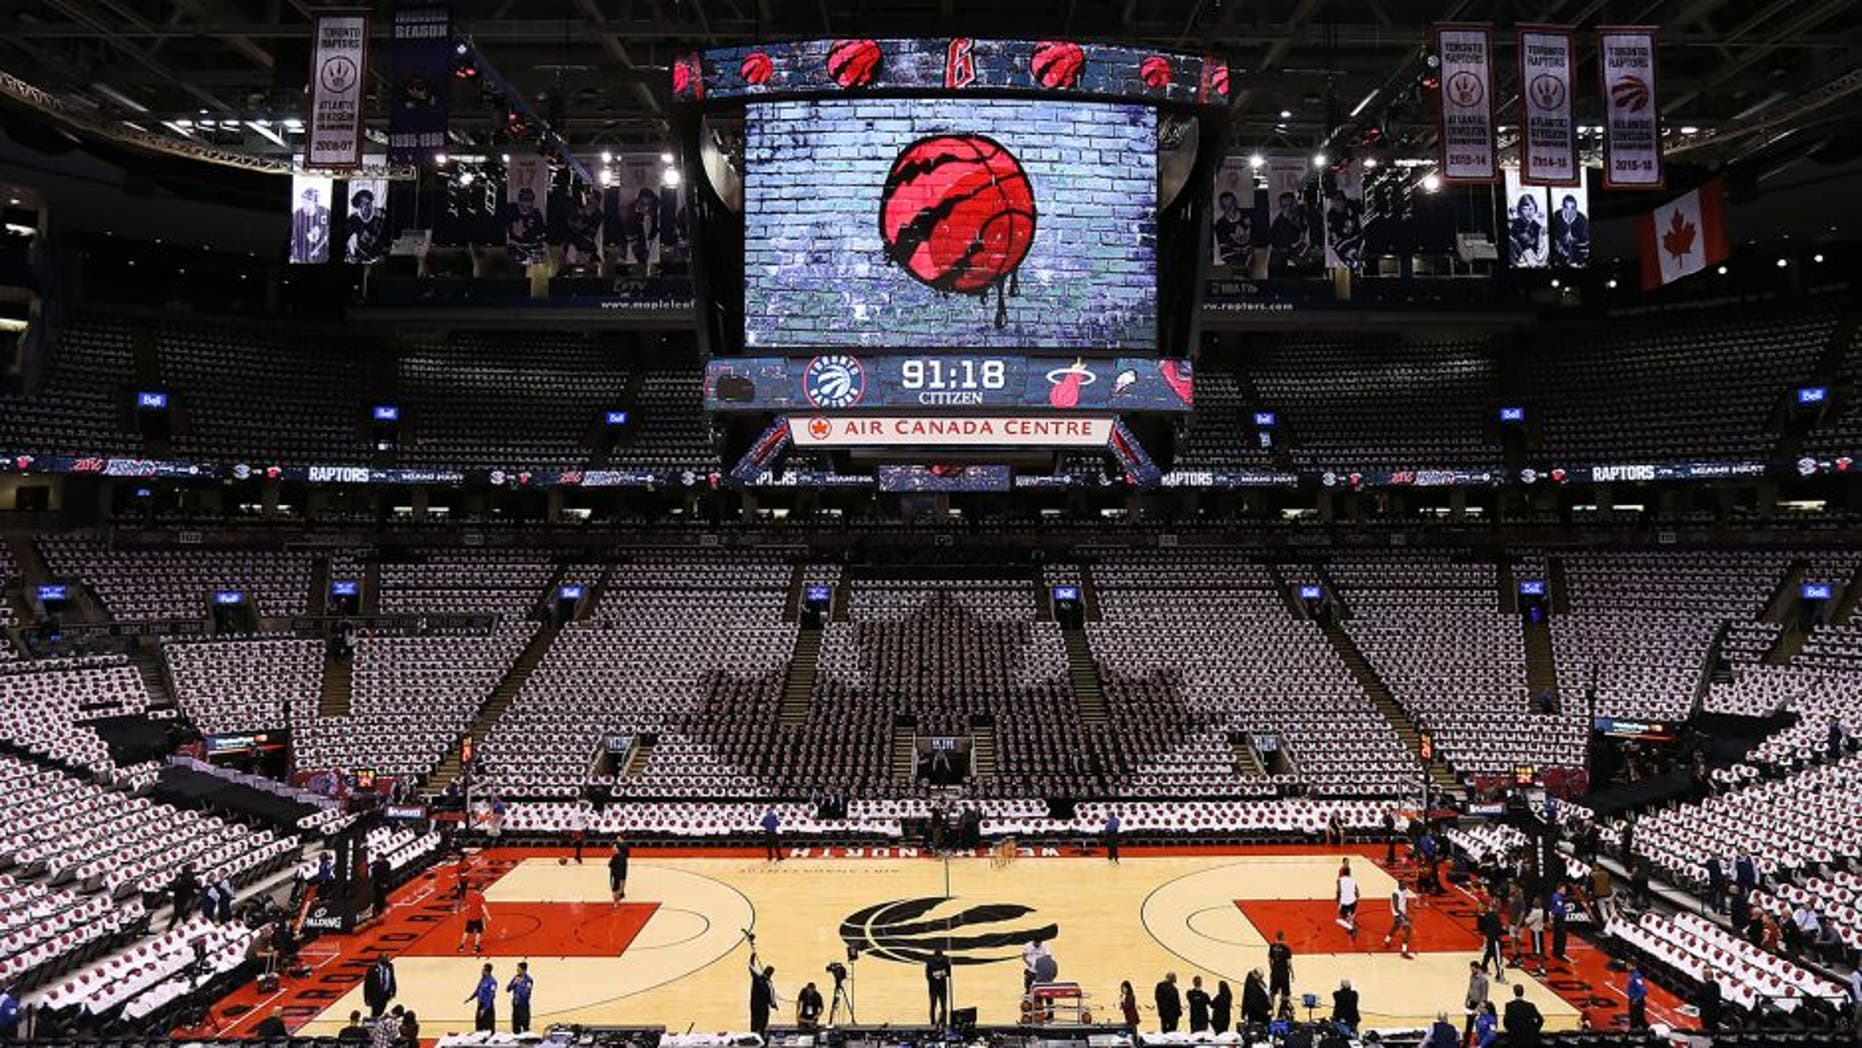 TORONTO,ON - MAY 15 2016: A general view of the court prior to the Miami Heat facing the Toronto Raptors in game 7 of the NBA Eastern Conference Semi Finals at Air Canada Centre on May 15, 2016 in Toronto, Ontario, Canada. NOTE TO USER: User expressly acknowledges and agrees that, by downloading and/or using this photograph, user is consenting to the terms and conditions of the Getty Images License Agreement. Mandatory Copyright Notice: Copyright 2016 NBAE (Photo by Dave Sandford/NBAE via Getty Images)